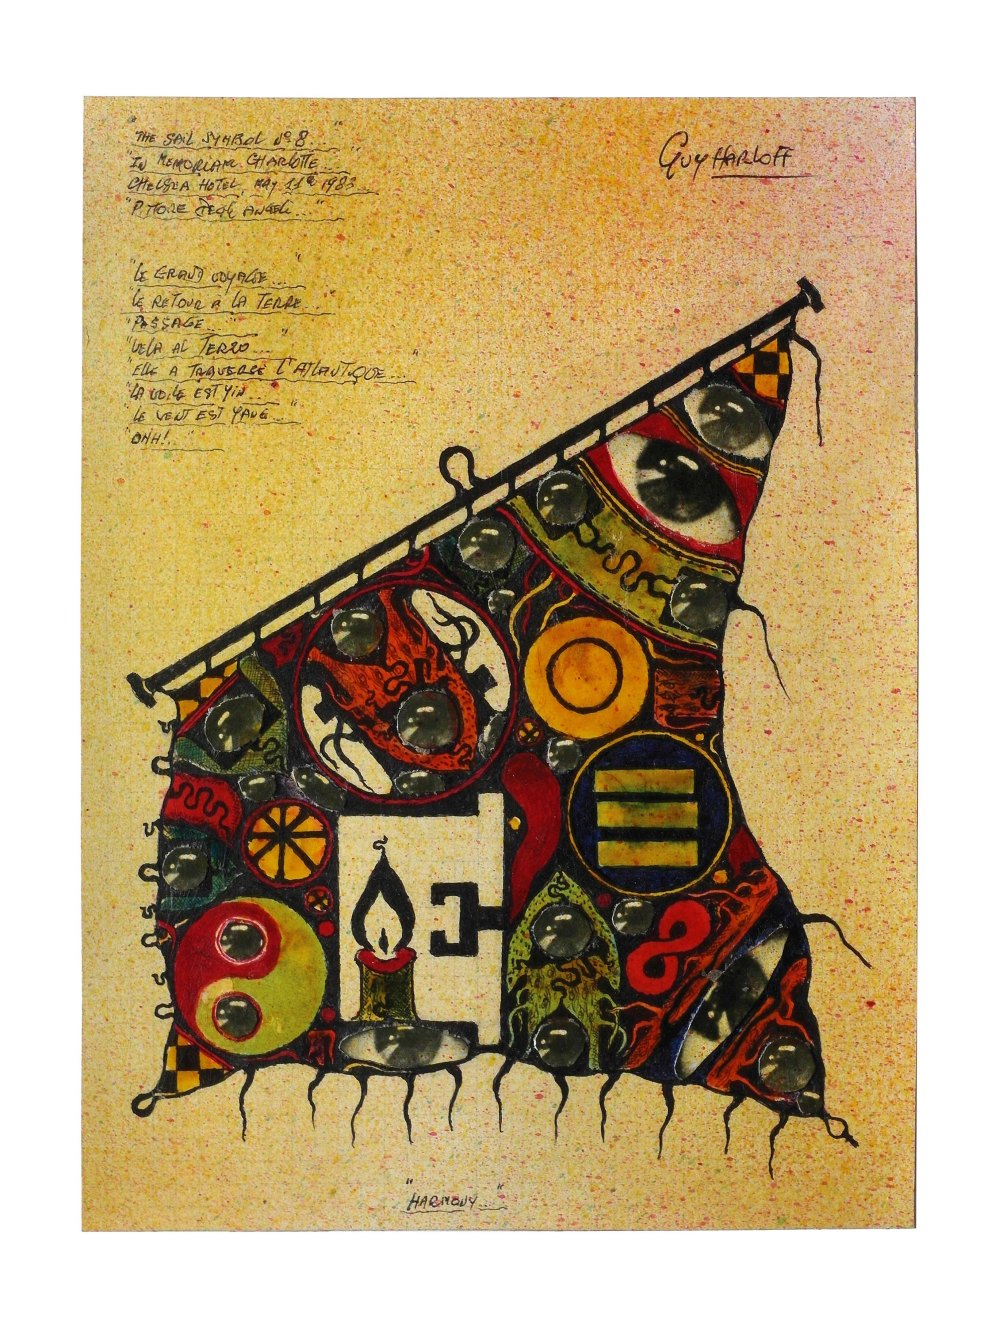 Tav. 30. The sail symbol n. 8, 1983, collage e inchiostri su carta, cm. 24,5x18. Collezione privata